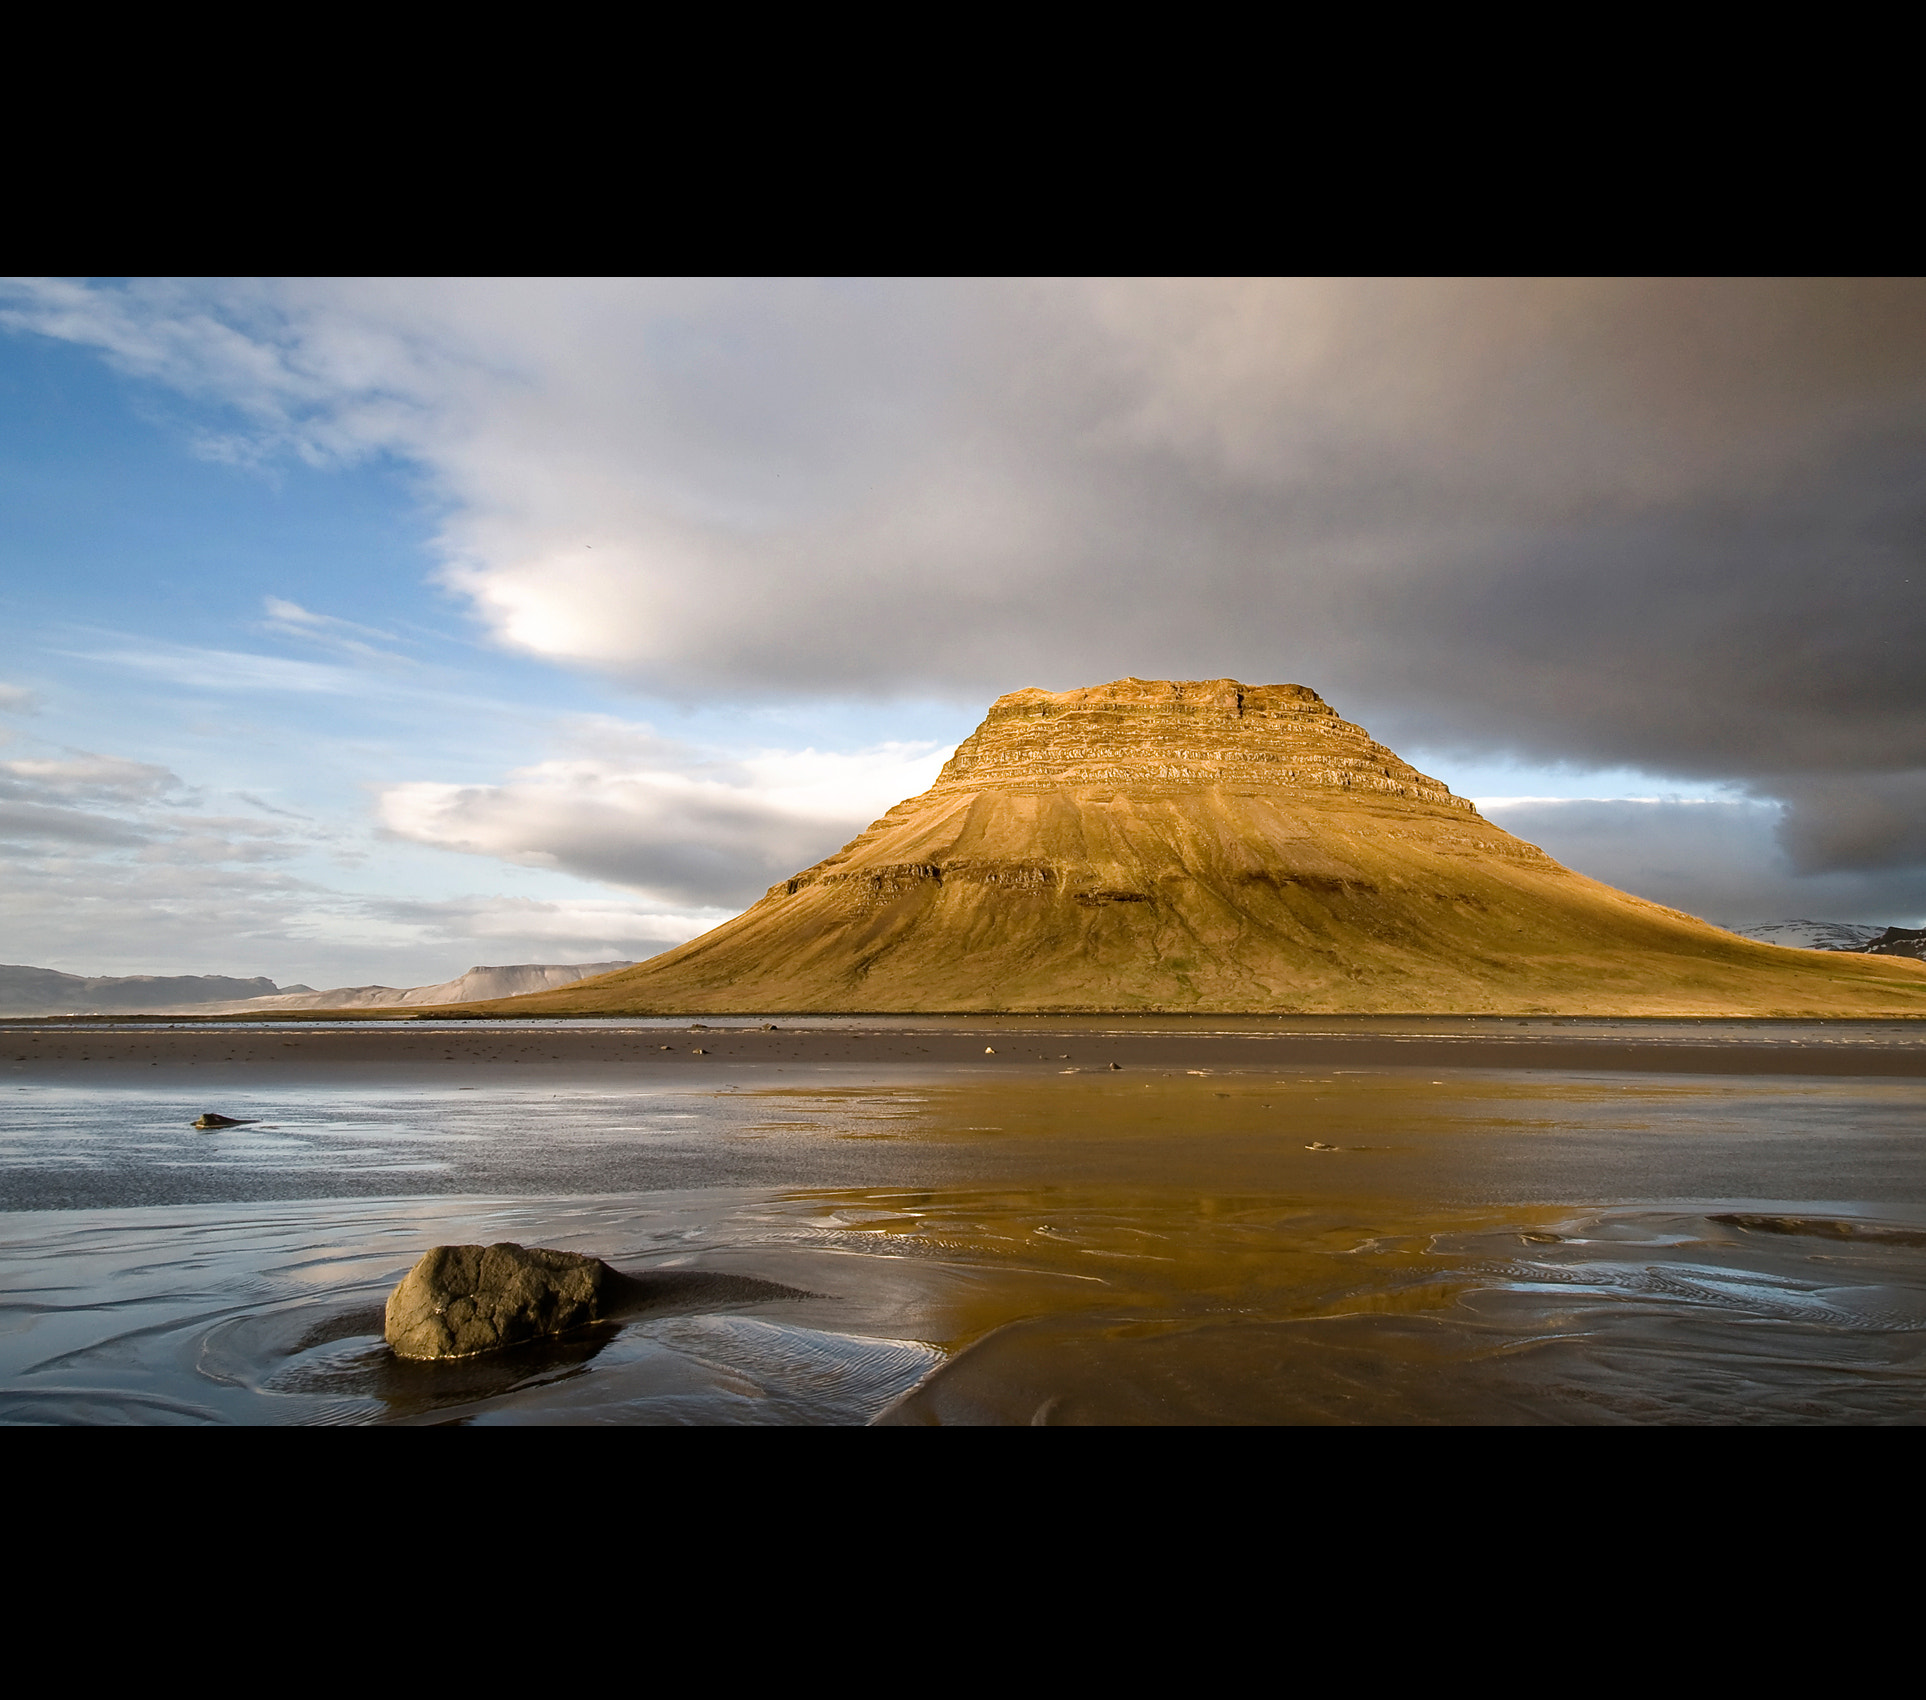 Photograph Dreaming of Iceland by Daniel Bosma on 500px